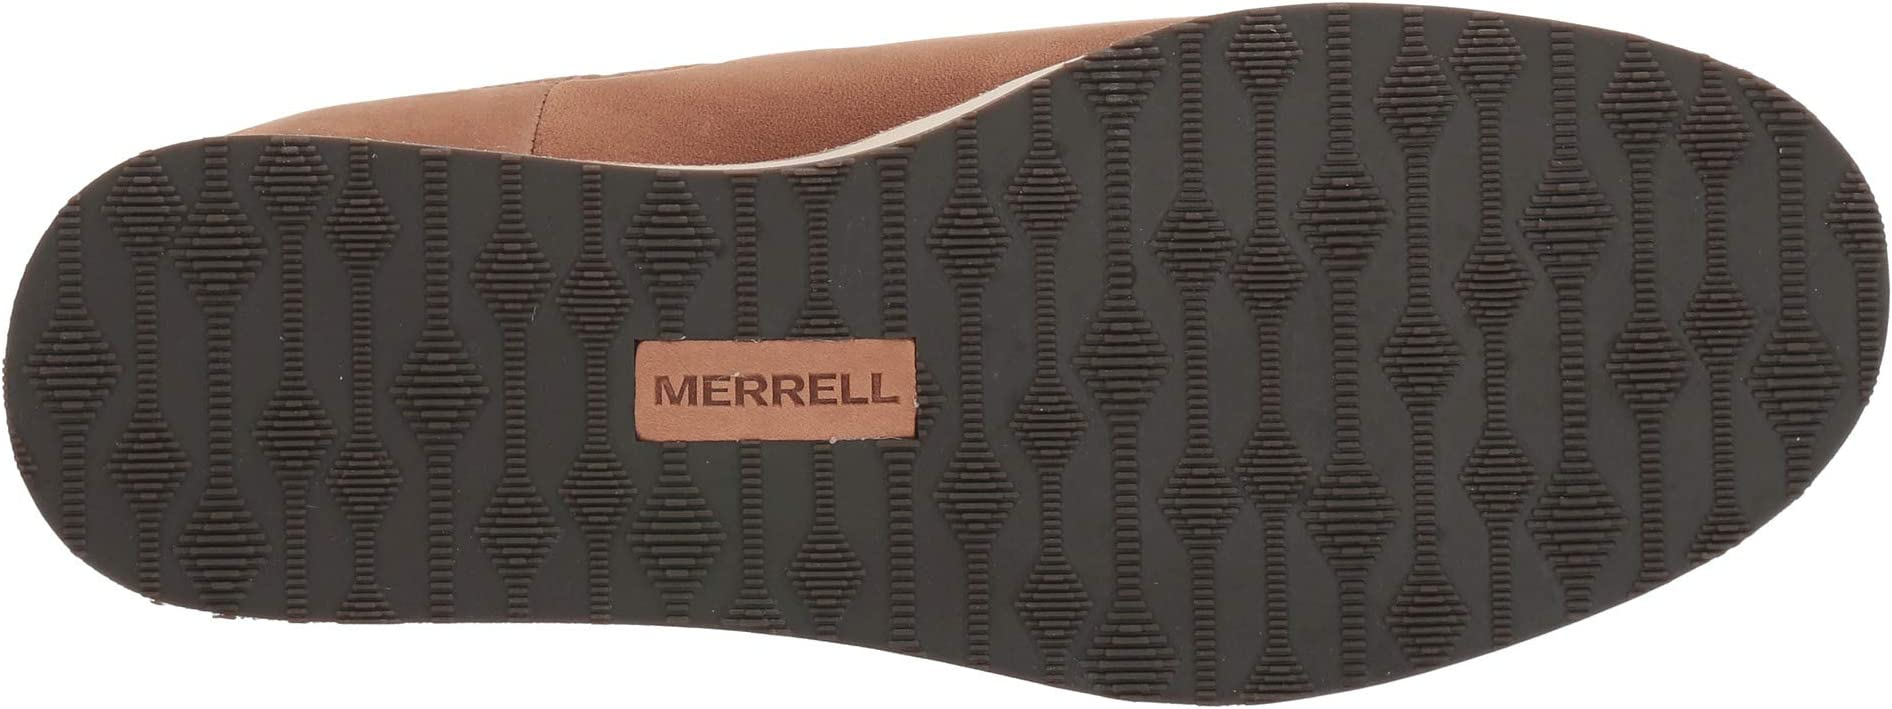 Merrell Roam Chelsea | Women's shoes | 2020 Newest